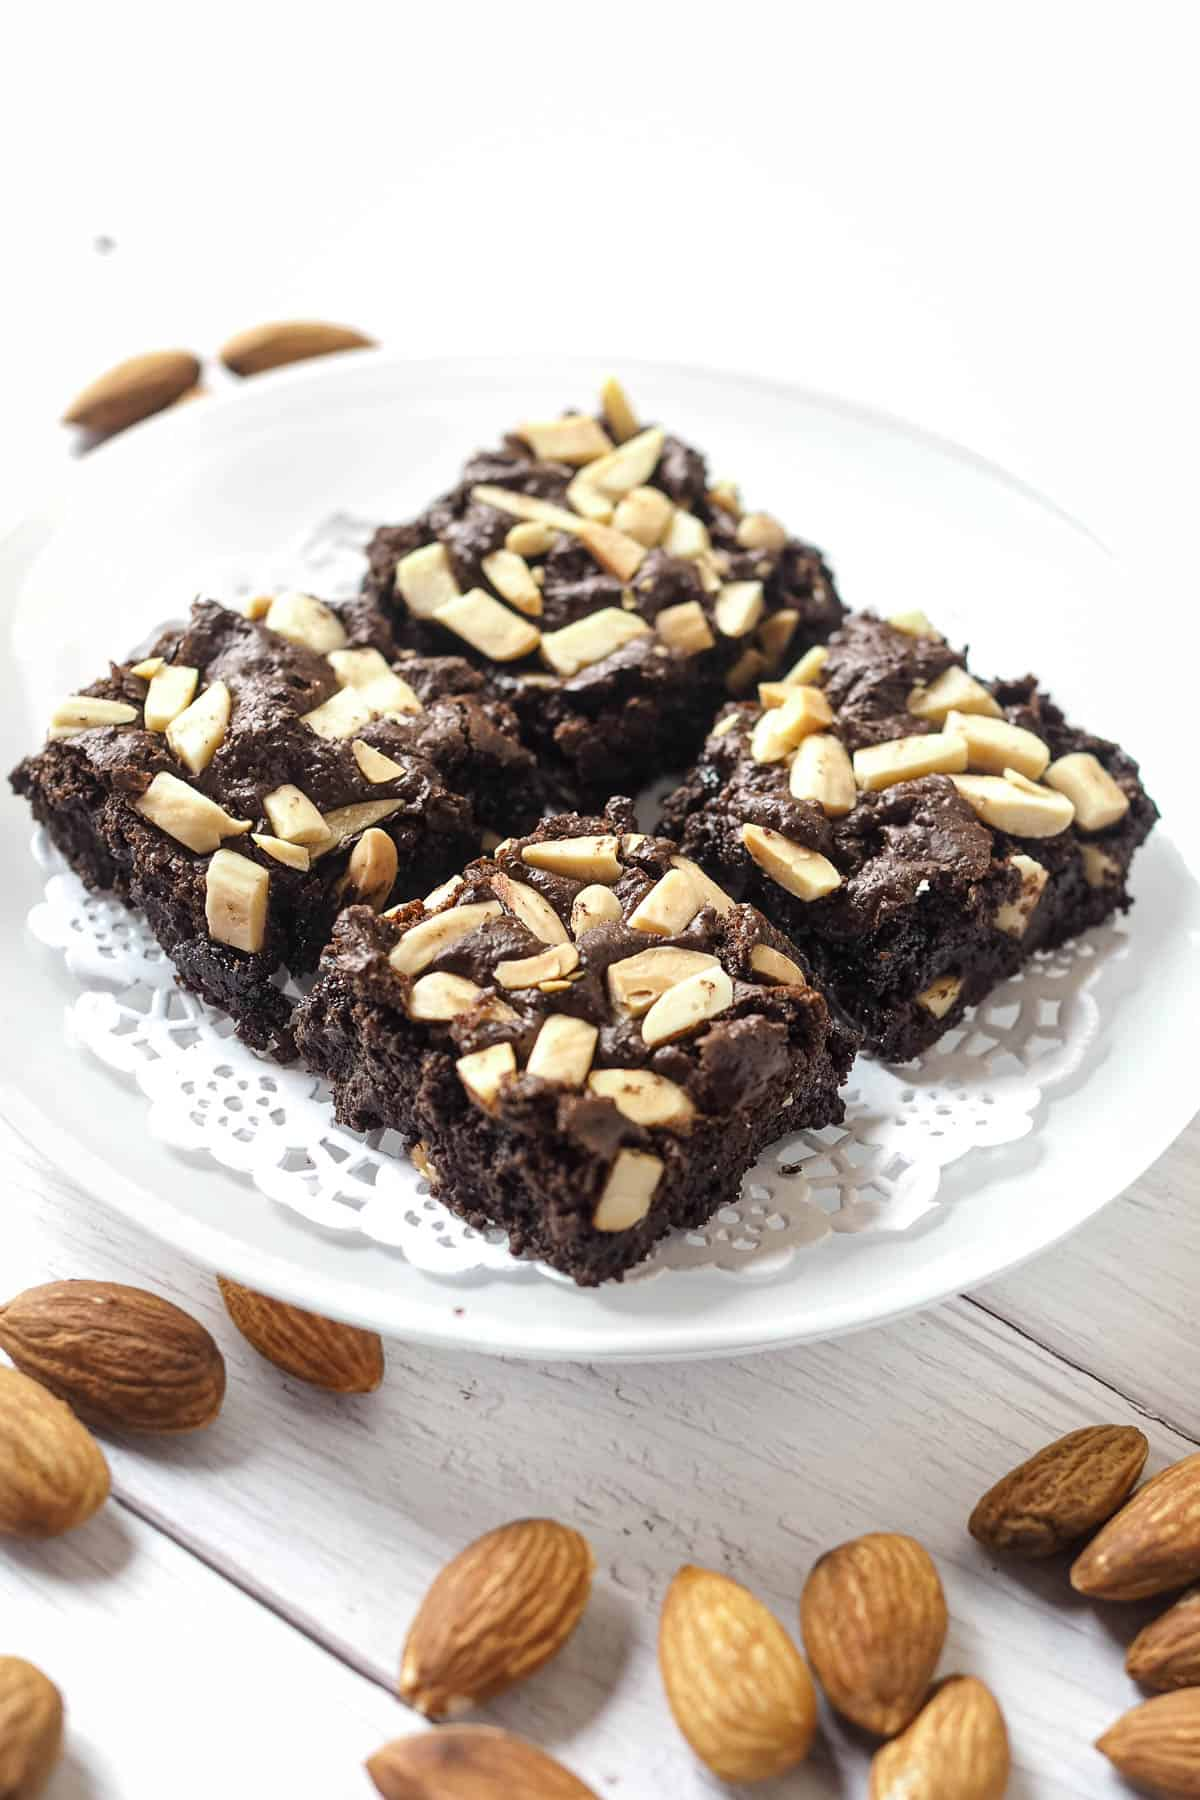 4 squares of brownies with almonds on top